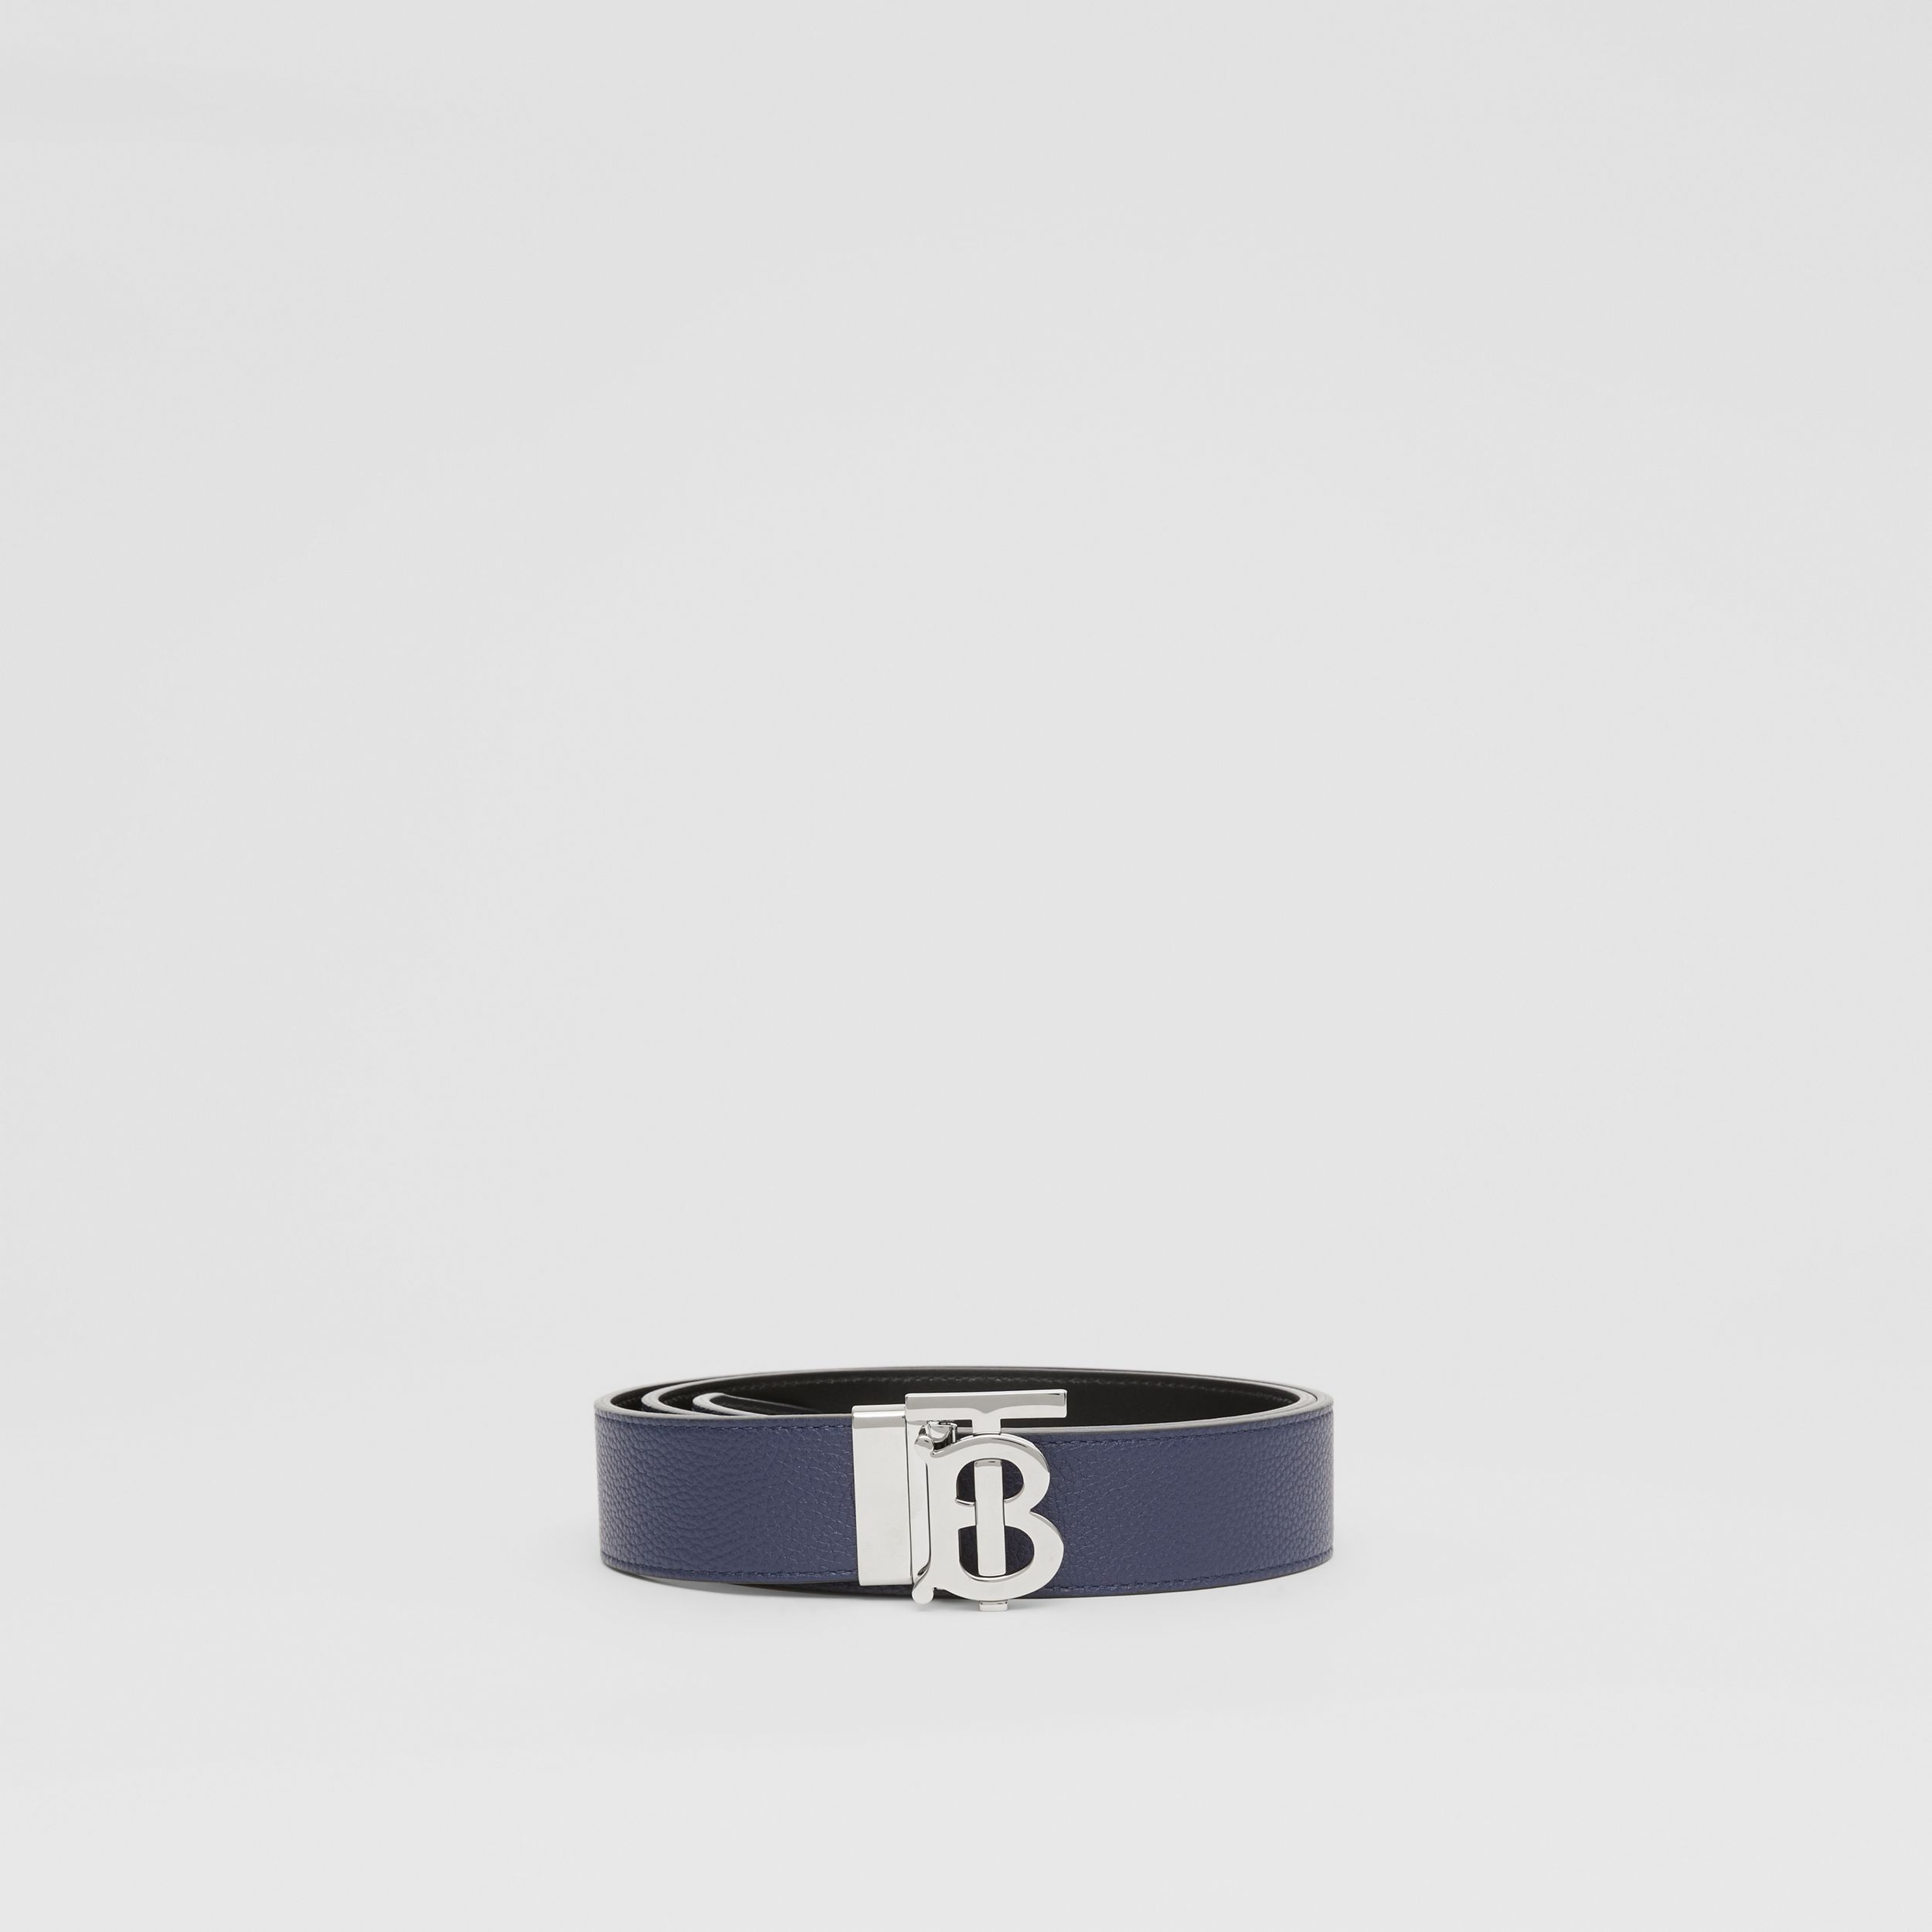 Reversible Monogram Motif Leather Belt in Navy/black - Men | Burberry Australia - 4